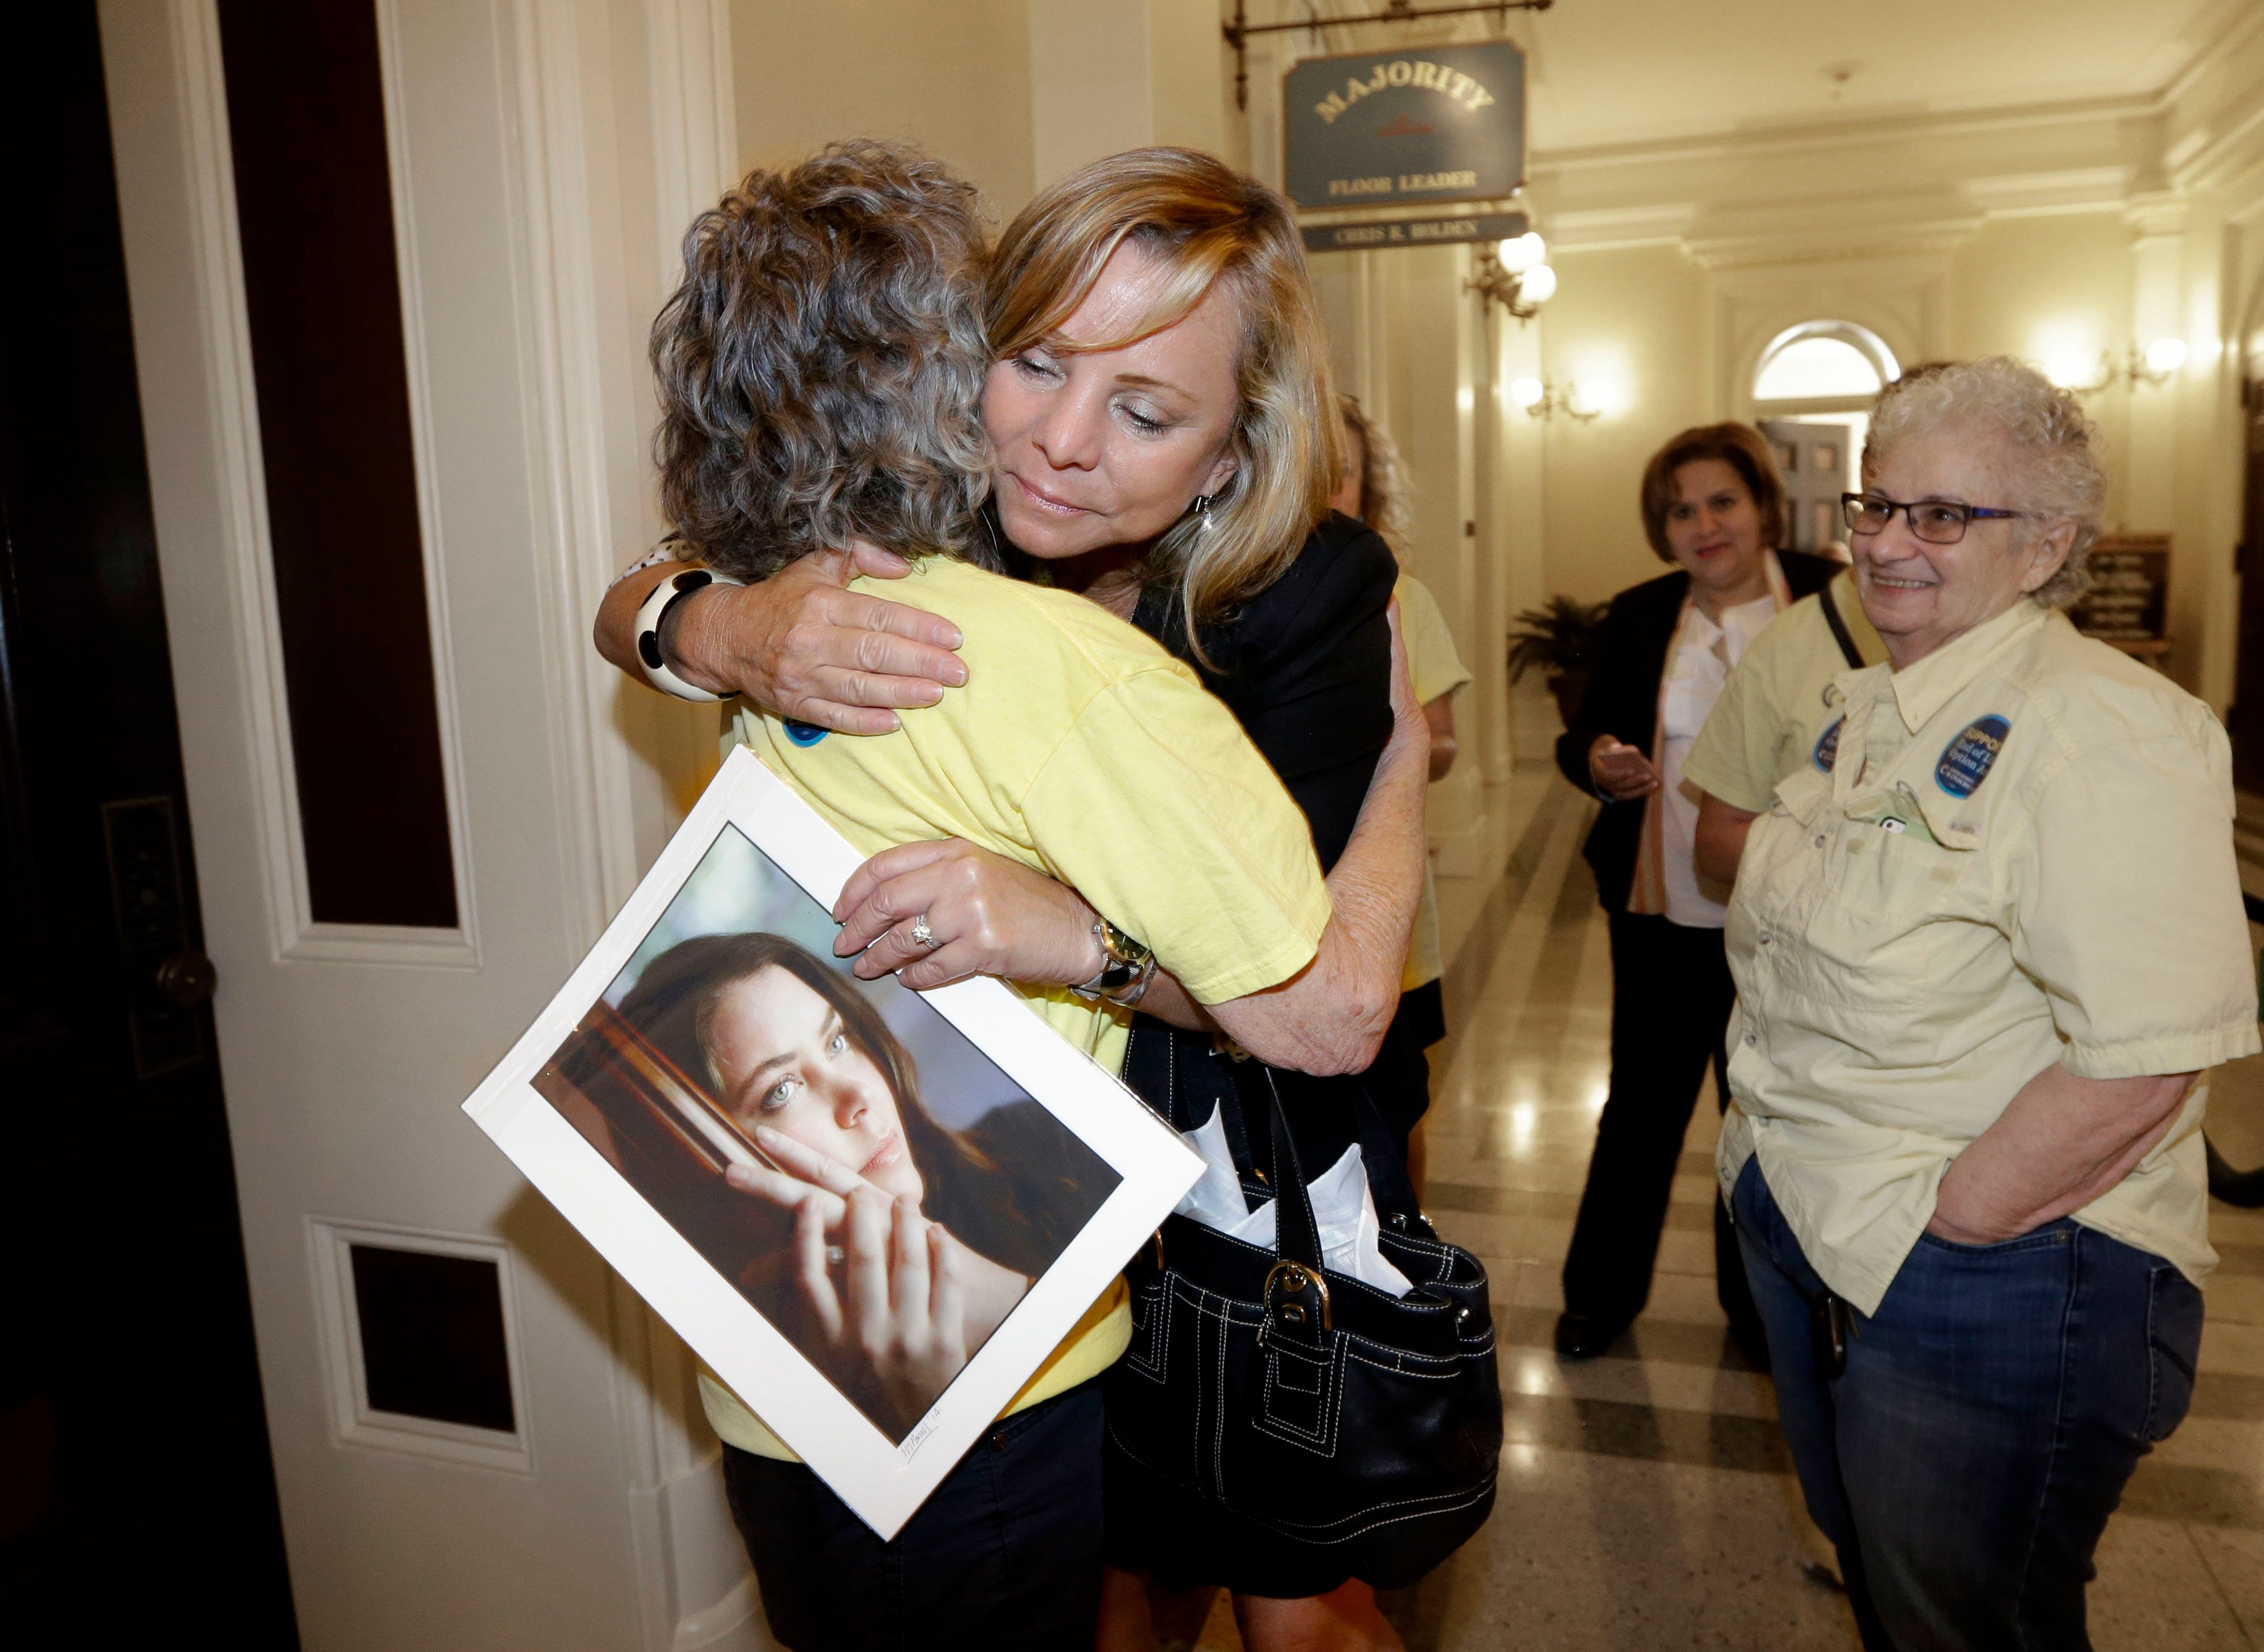 Debbie Ziegler holds a photo of her daughter, Brittany Maynard, and get a hug after the California legislature appr